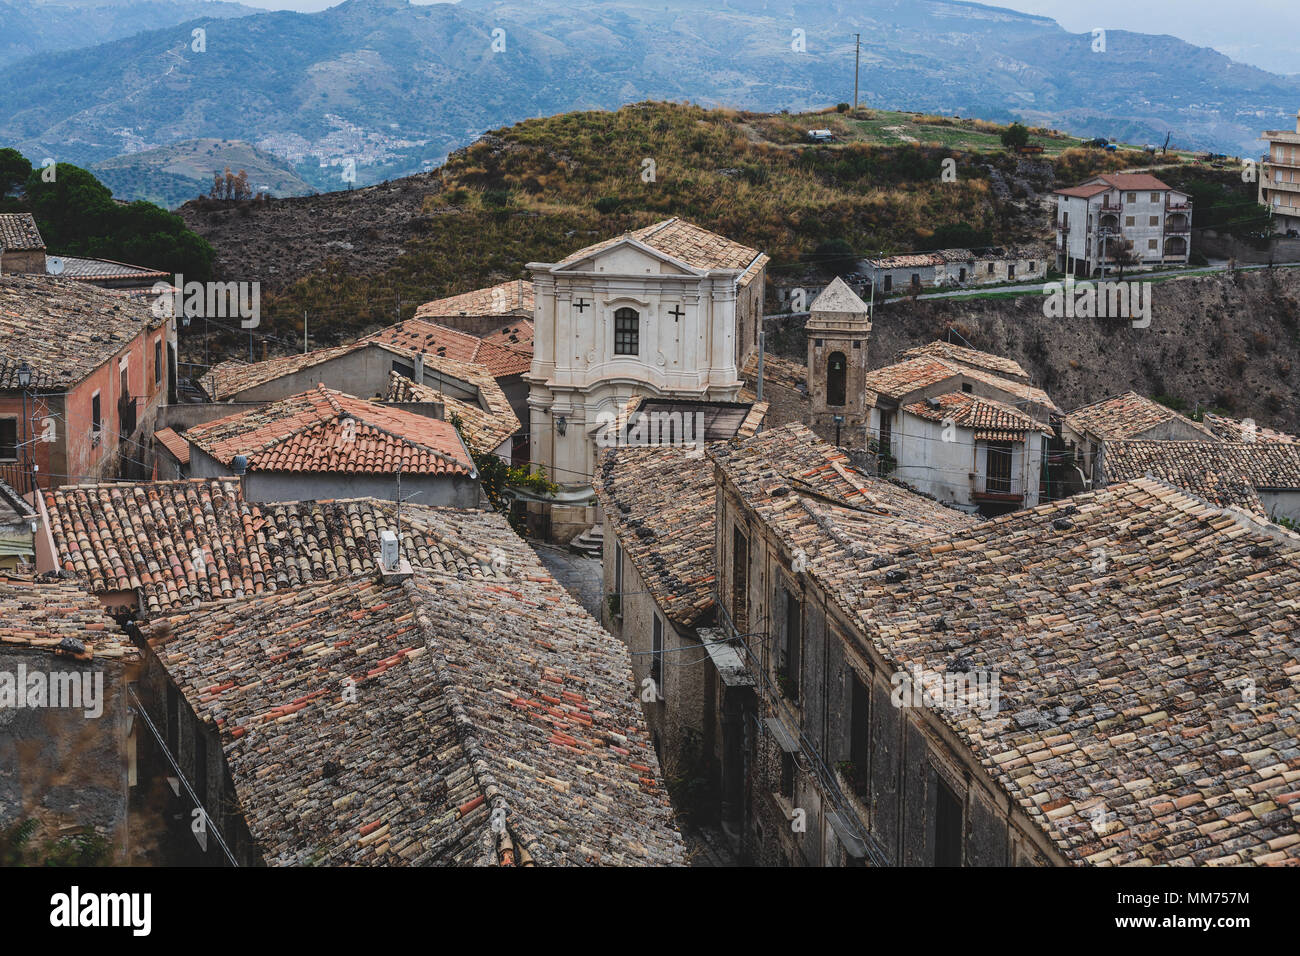 View of Gerace, Calabria, Italy - Stock Image